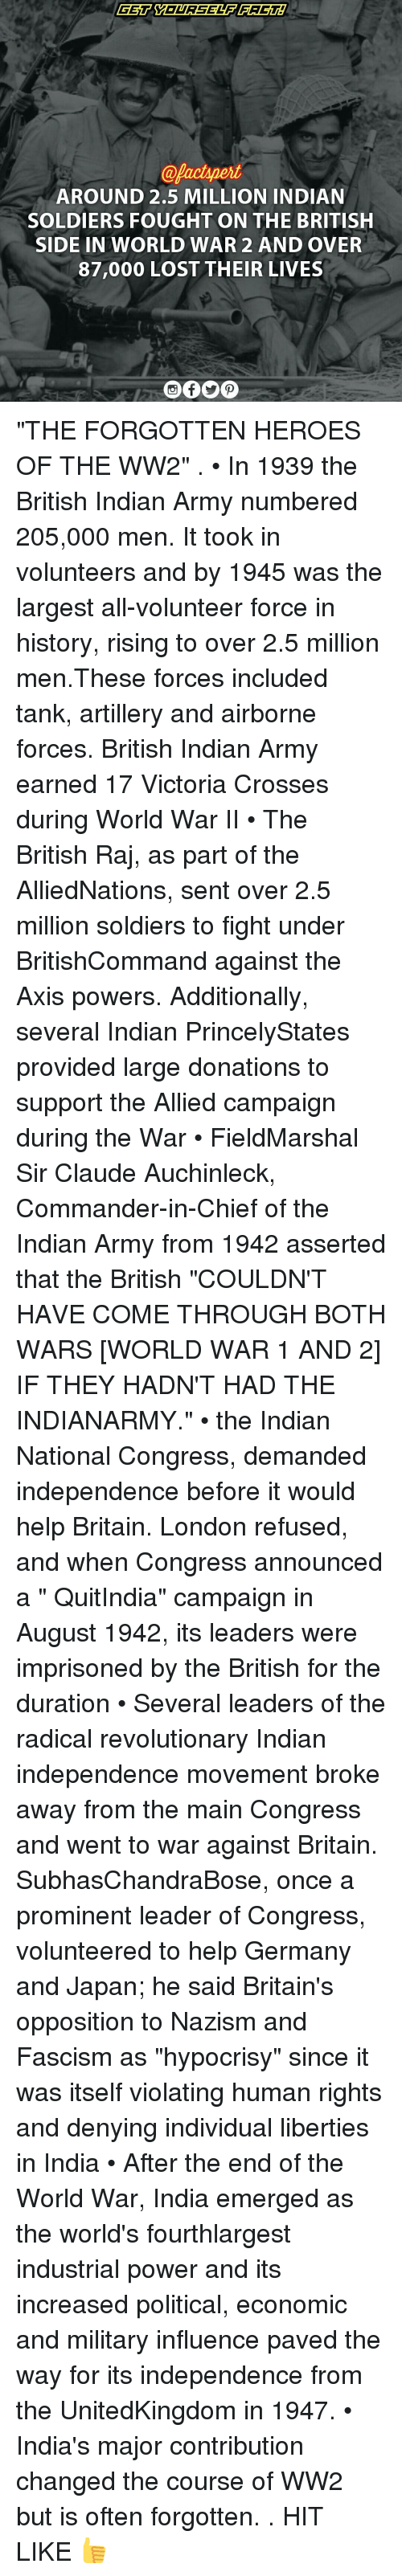 """axis powers: @pactspert  AROUND 2.5 MILLION INDIAN  SOLDIERS FOUGHT ON THE BRITISH  SIDE IN WORLD WAR 2 AND OVER  87,000 LOST THEIR LIVES """"THE FORGOTTEN HEROES OF THE WW2"""" . • In 1939 the British Indian Army numbered 205,000 men. It took in volunteers and by 1945 was the largest all-volunteer force in history, rising to over 2.5 million men.These forces included tank, artillery and airborne forces. British Indian Army earned 17 Victoria Crosses during World War II • The British Raj, as part of the AlliedNations, sent over 2.5 million soldiers to fight under BritishCommand against the Axis powers. Additionally, several Indian PrincelyStates provided large donations to support the Allied campaign during the War • FieldMarshal Sir Claude Auchinleck, Commander-in-Chief of the Indian Army from 1942 asserted that the British """"COULDN'T HAVE COME THROUGH BOTH WARS [WORLD WAR 1 AND 2] IF THEY HADN'T HAD THE INDIANARMY."""" • the Indian National Congress, demanded independence before it would help Britain. London refused, and when Congress announced a """" QuitIndia"""" campaign in August 1942, its leaders were imprisoned by the British for the duration • Several leaders of the radical revolutionary Indian independence movement broke away from the main Congress and went to war against Britain. SubhasChandraBose, once a prominent leader of Congress, volunteered to help Germany and Japan; he said Britain's opposition to Nazism and Fascism as """"hypocrisy"""" since it was itself violating human rights and denying individual liberties in India • After the end of the World War, India emerged as the world's fourthlargest industrial power and its increased political, economic and military influence paved the way for its independence from the UnitedKingdom in 1947. • India's major contribution changed the course of WW2 but is often forgotten. . HIT LIKE 👍"""